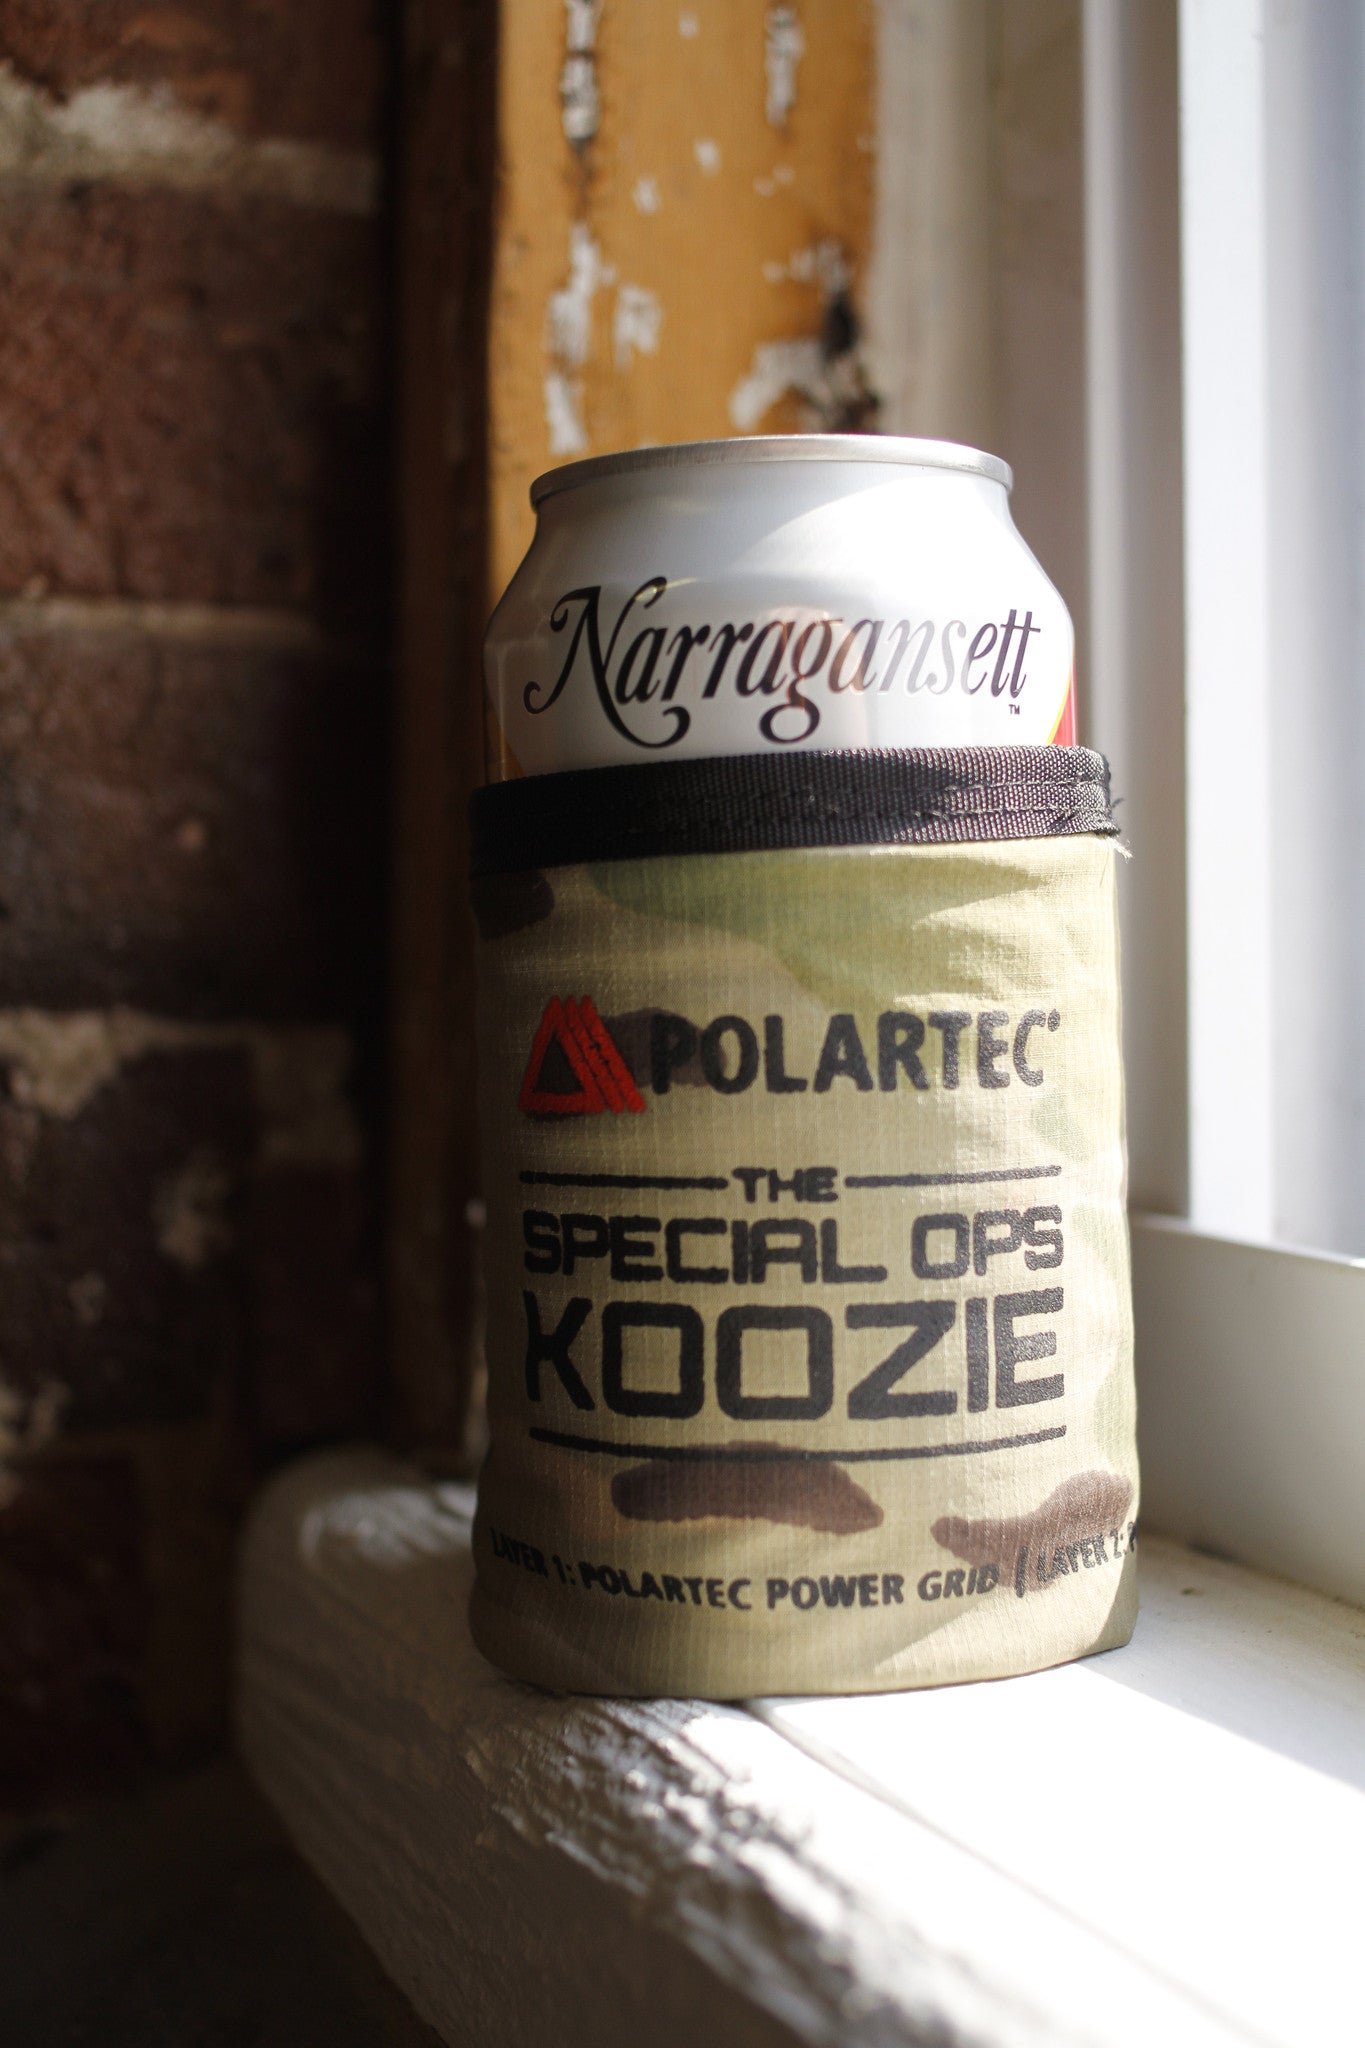 Polartec X 'Gansett Special Ops Coozie (Benefits Homes for Our Troops)